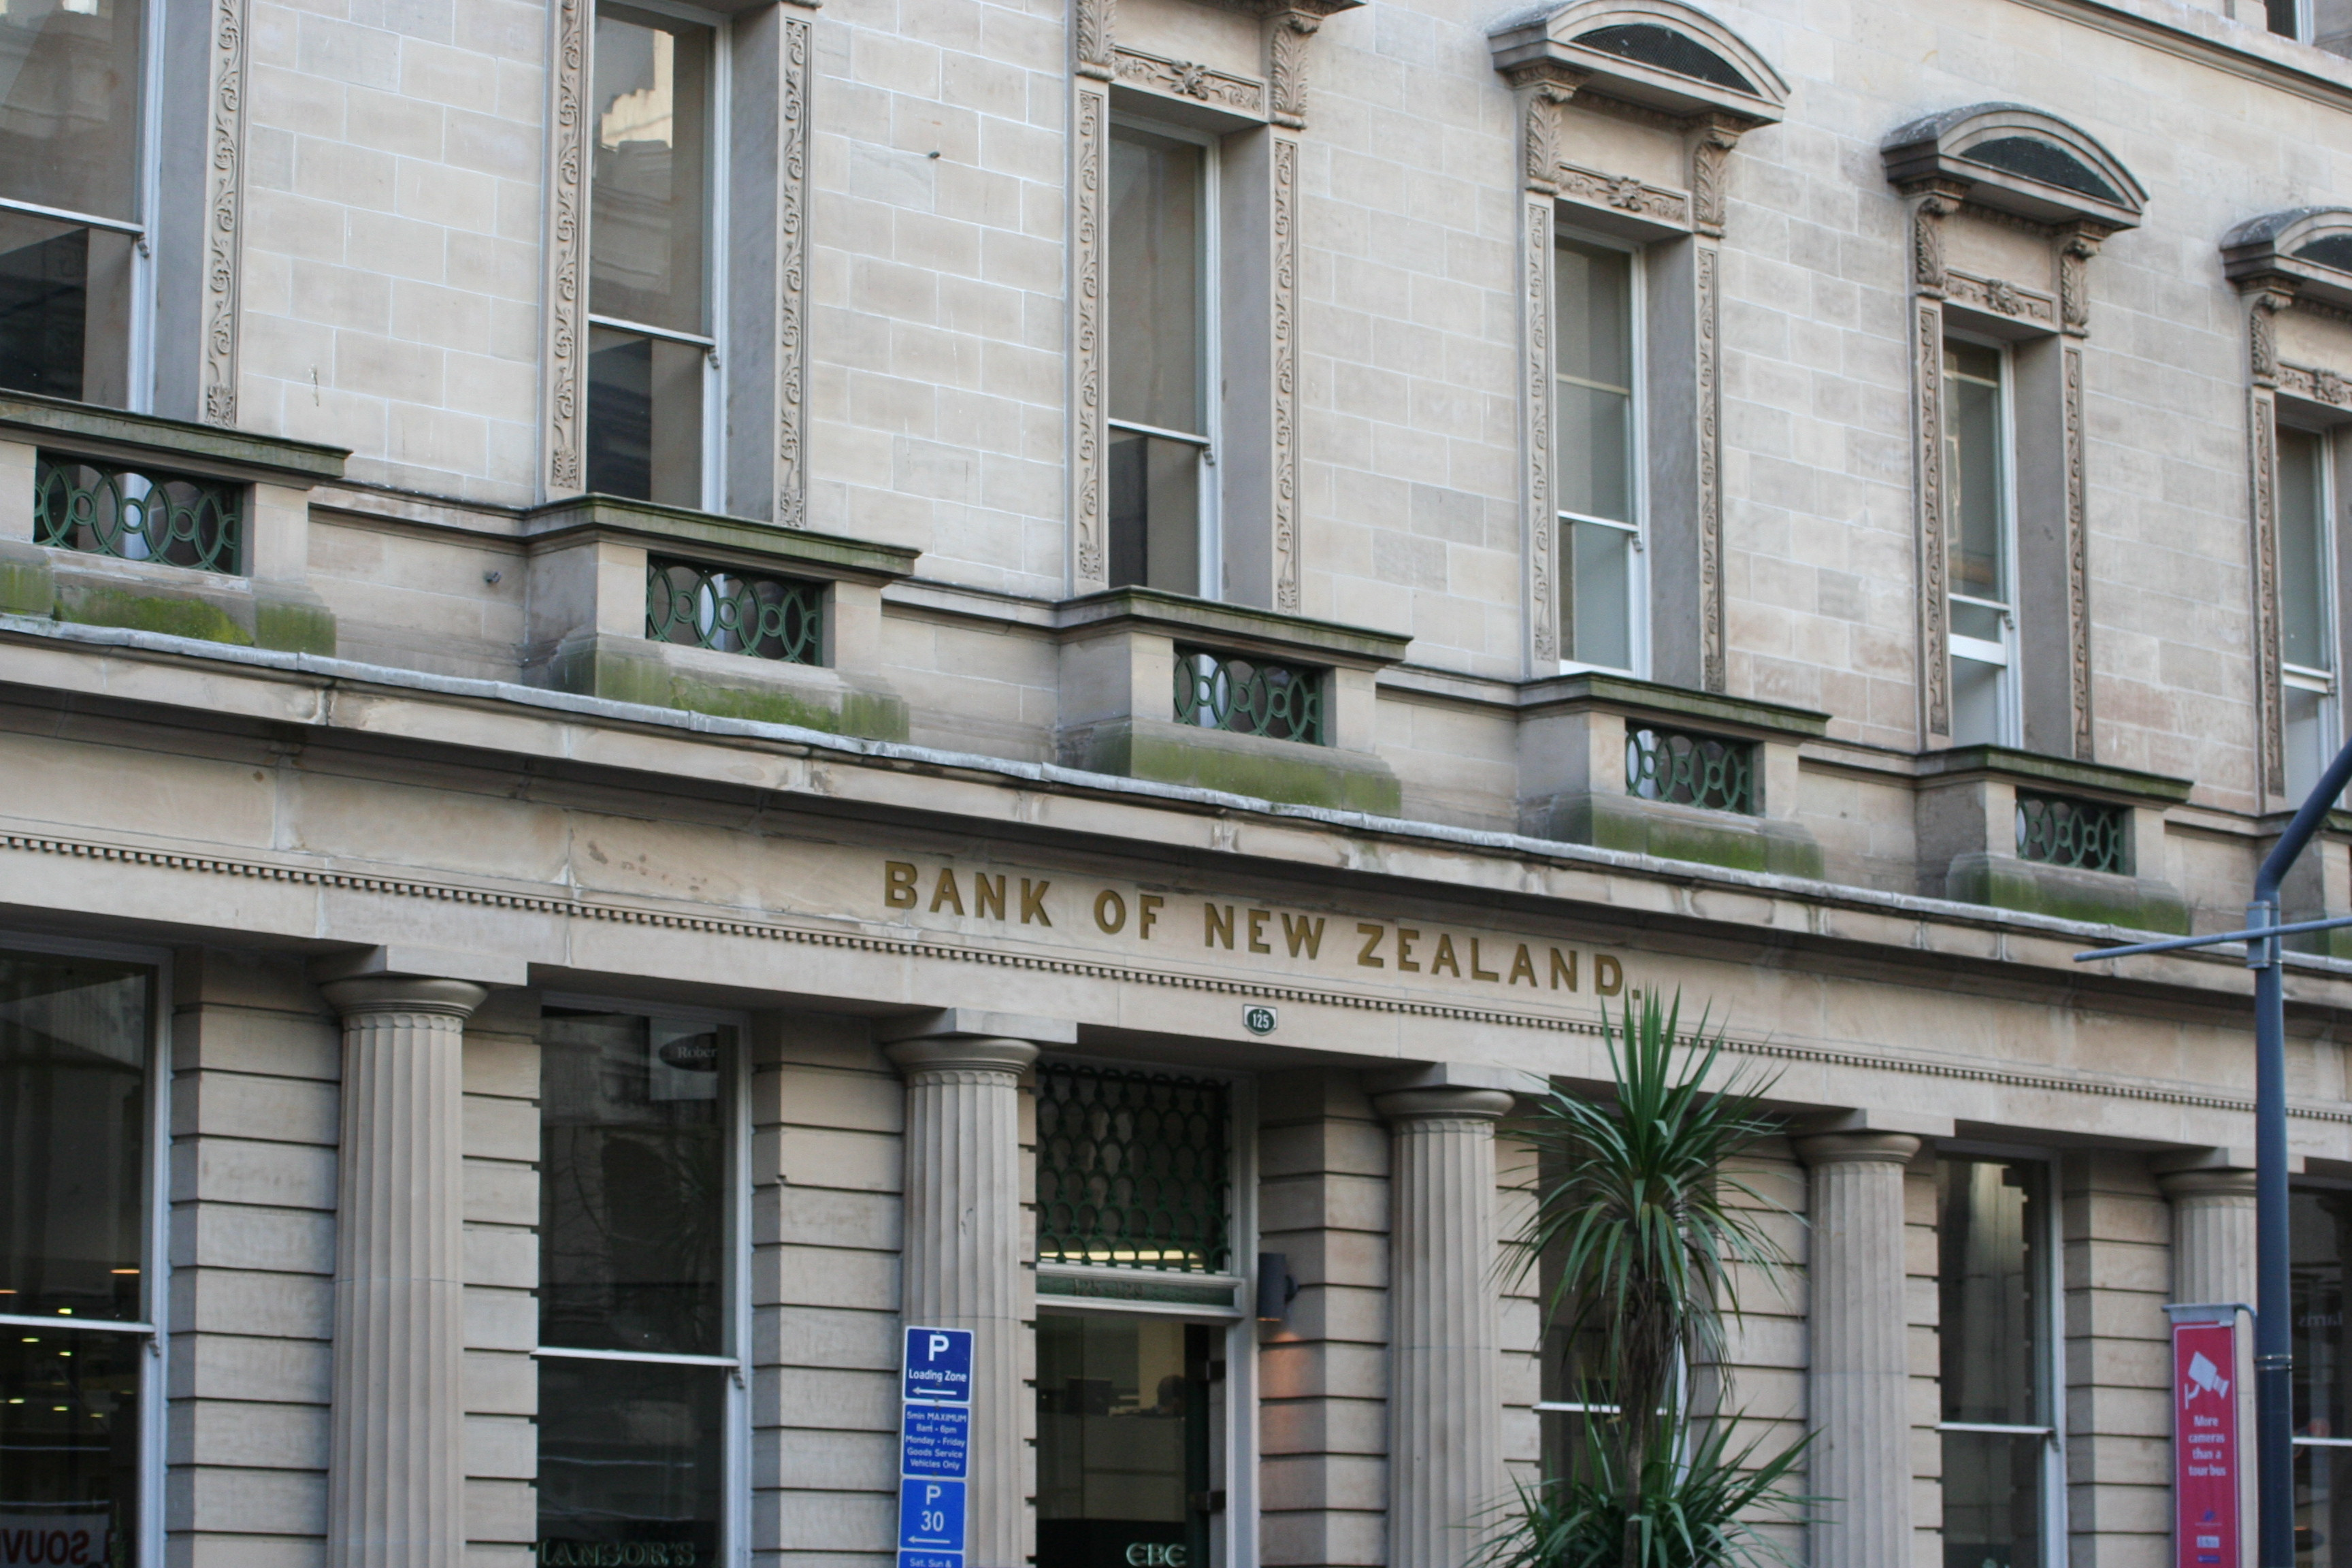 Bank of NewZealand, Auckland